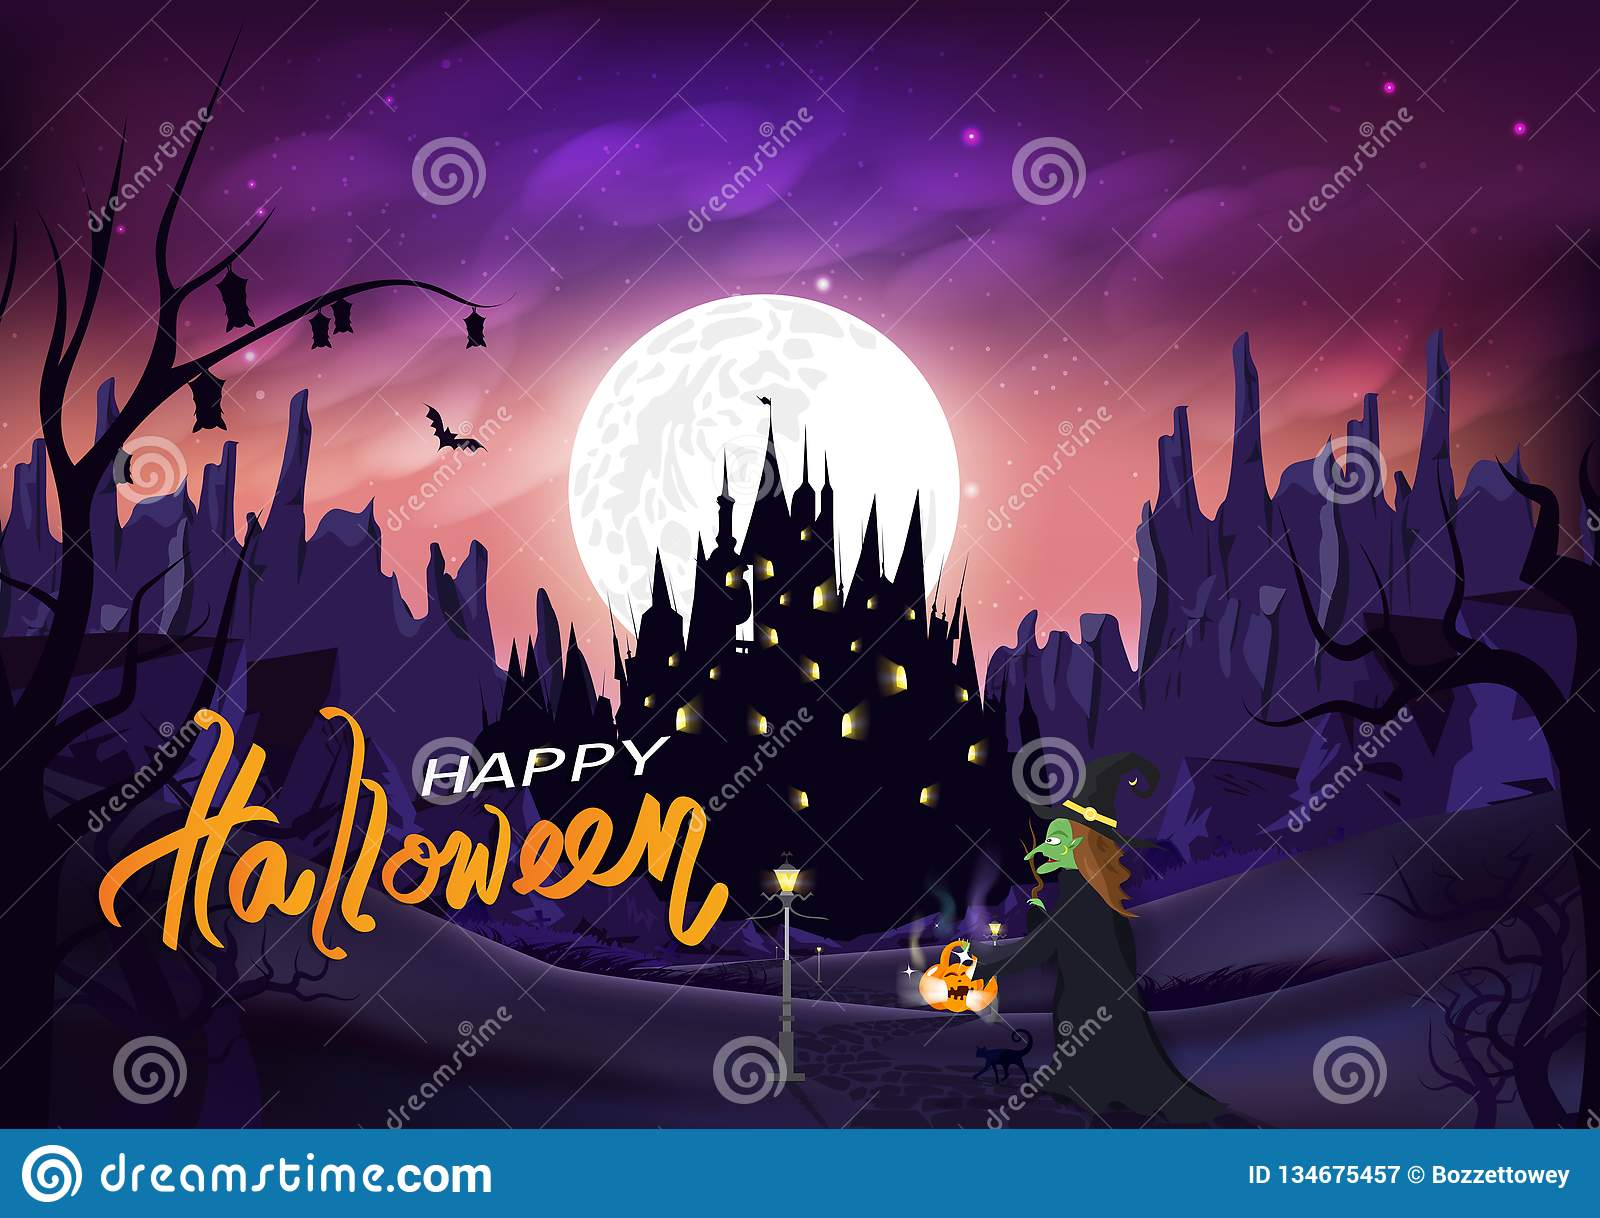 Halloween, witch and cat walk on the road to castle, magic and pumpkin, Jack-O-Lantern, fantasy miracle silhouette night scene,